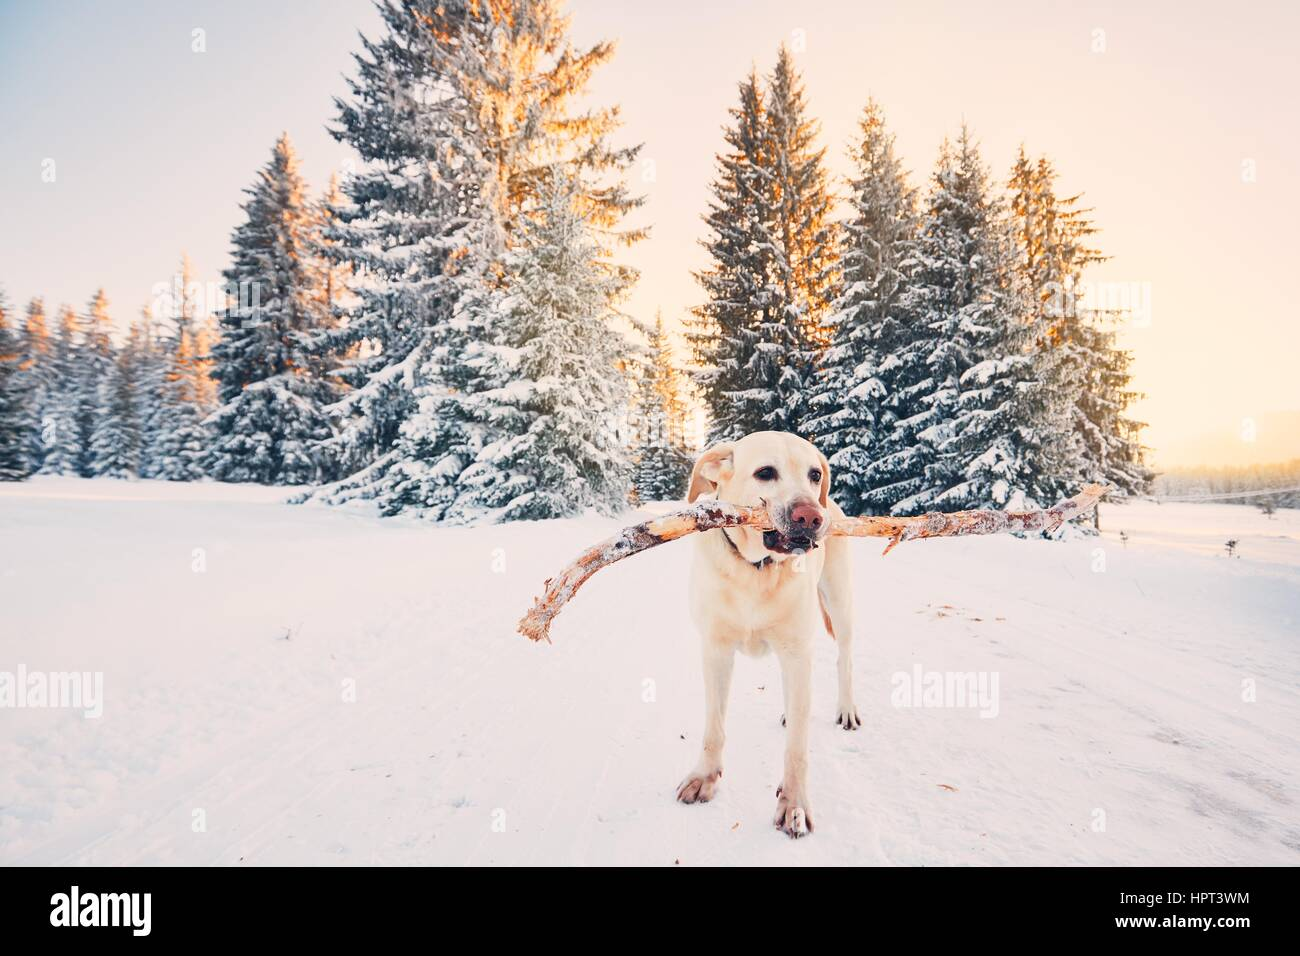 Dog in winter nature. Yellow labrador retriever is walking with stick in mouth during golden sunset. - Stock Image